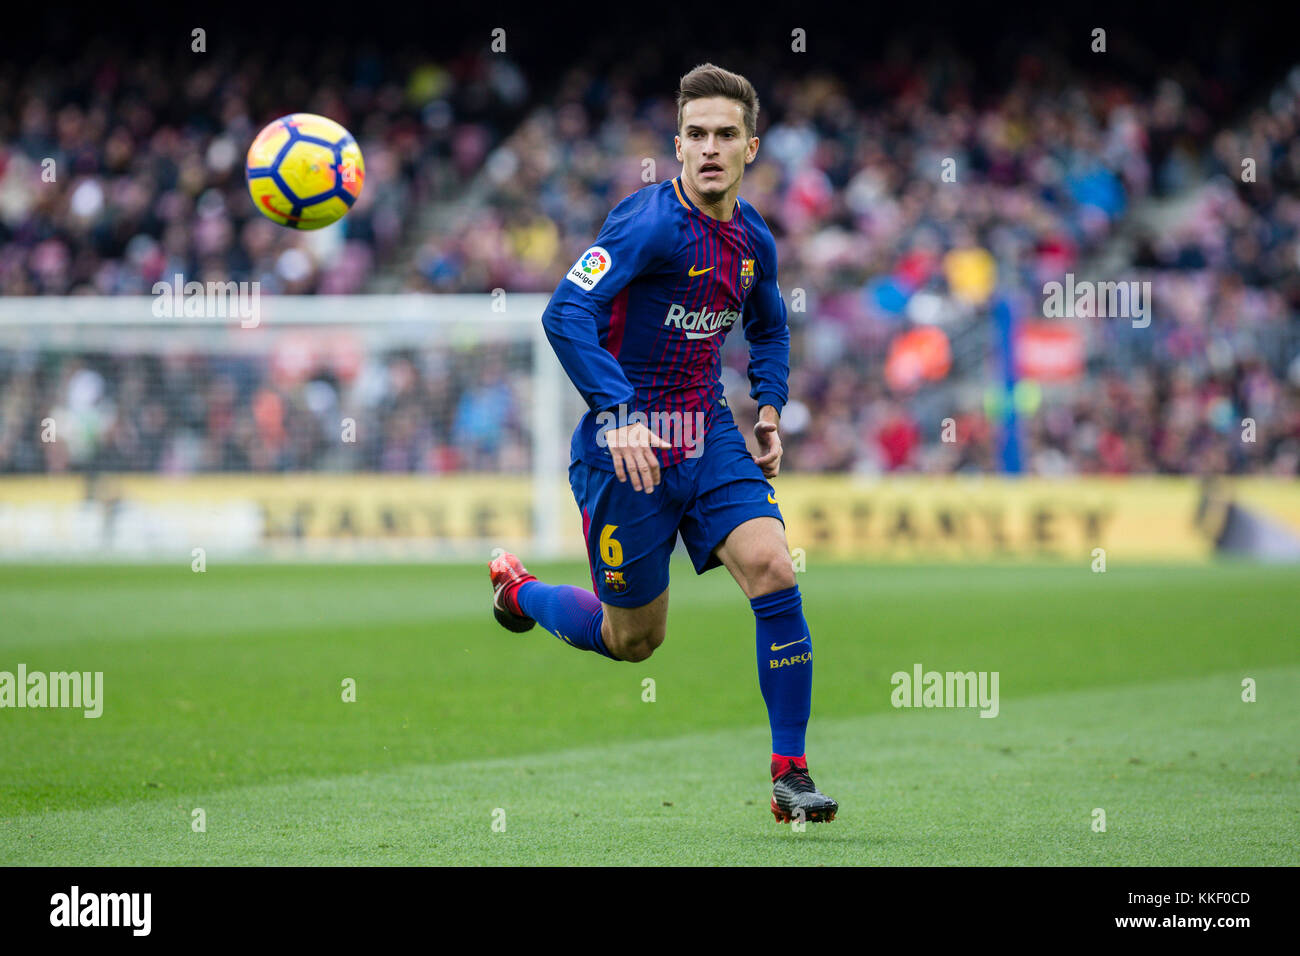 SPAIN - 2th of December: FC Barcelona midfielder Denis Suarez (6) during the match between FC Barcelona against - Stock Image